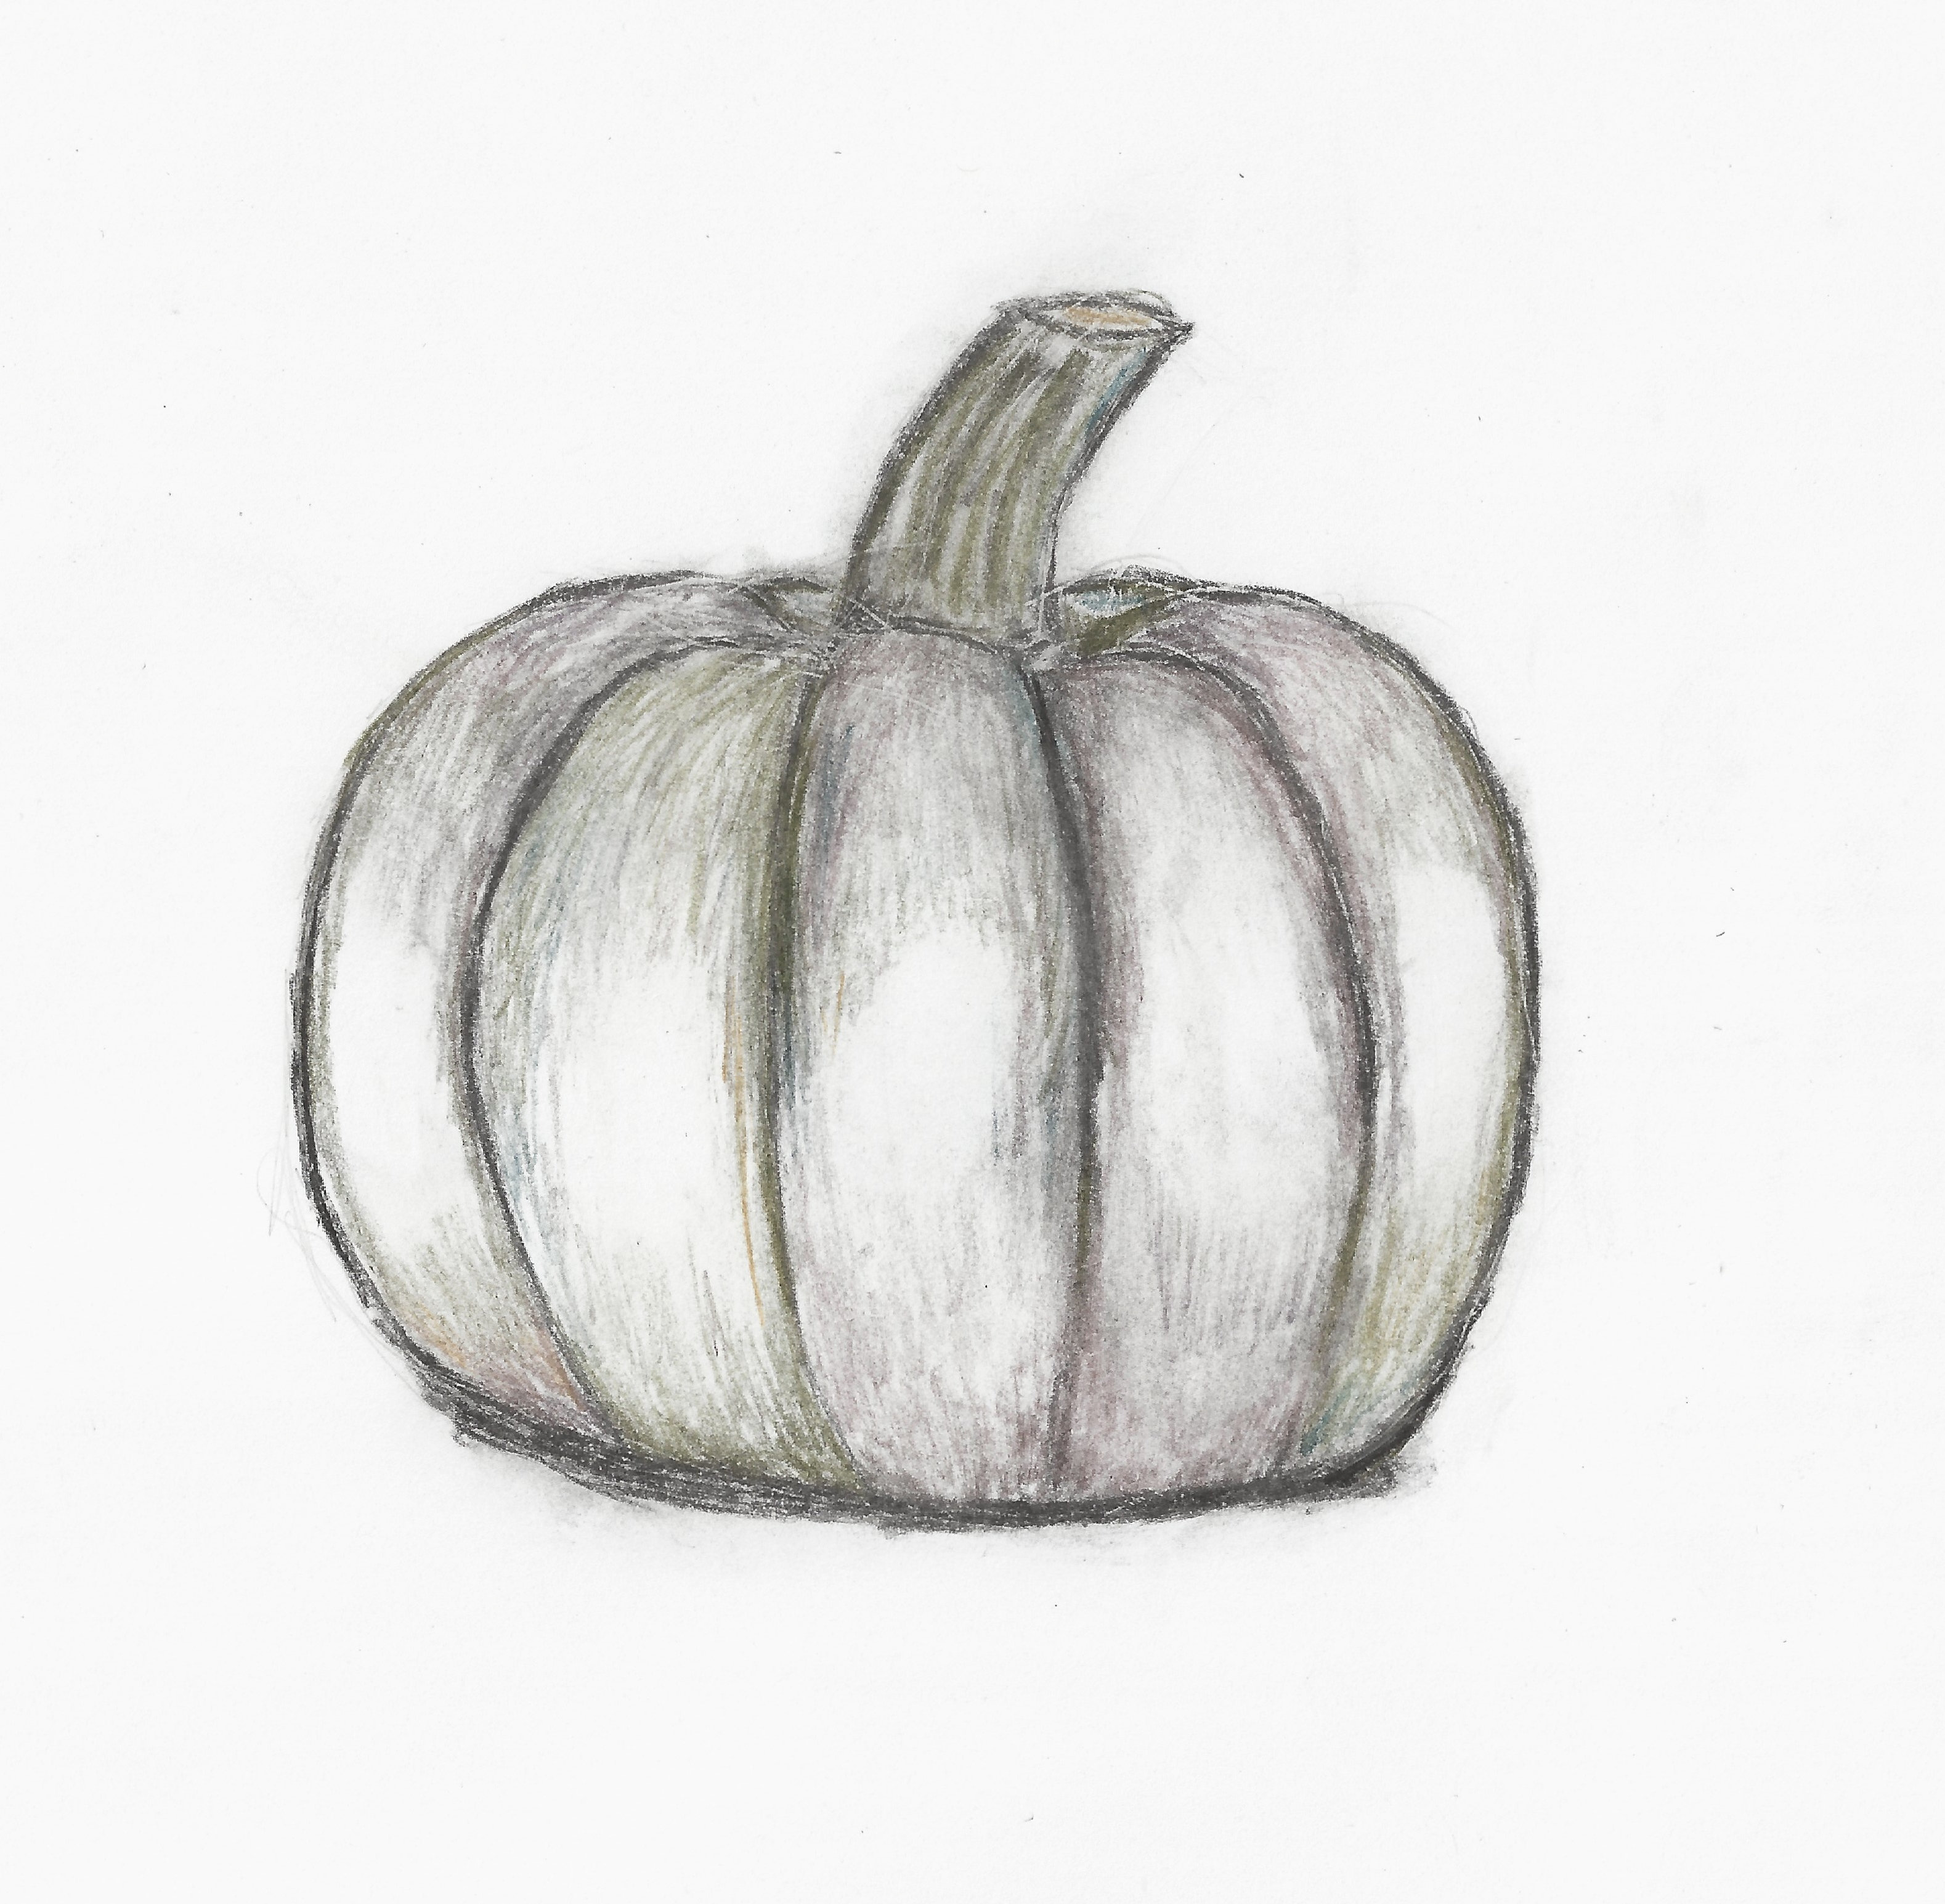 Drawn pumpkin charcoal Pumpkin – 2014 on Wry